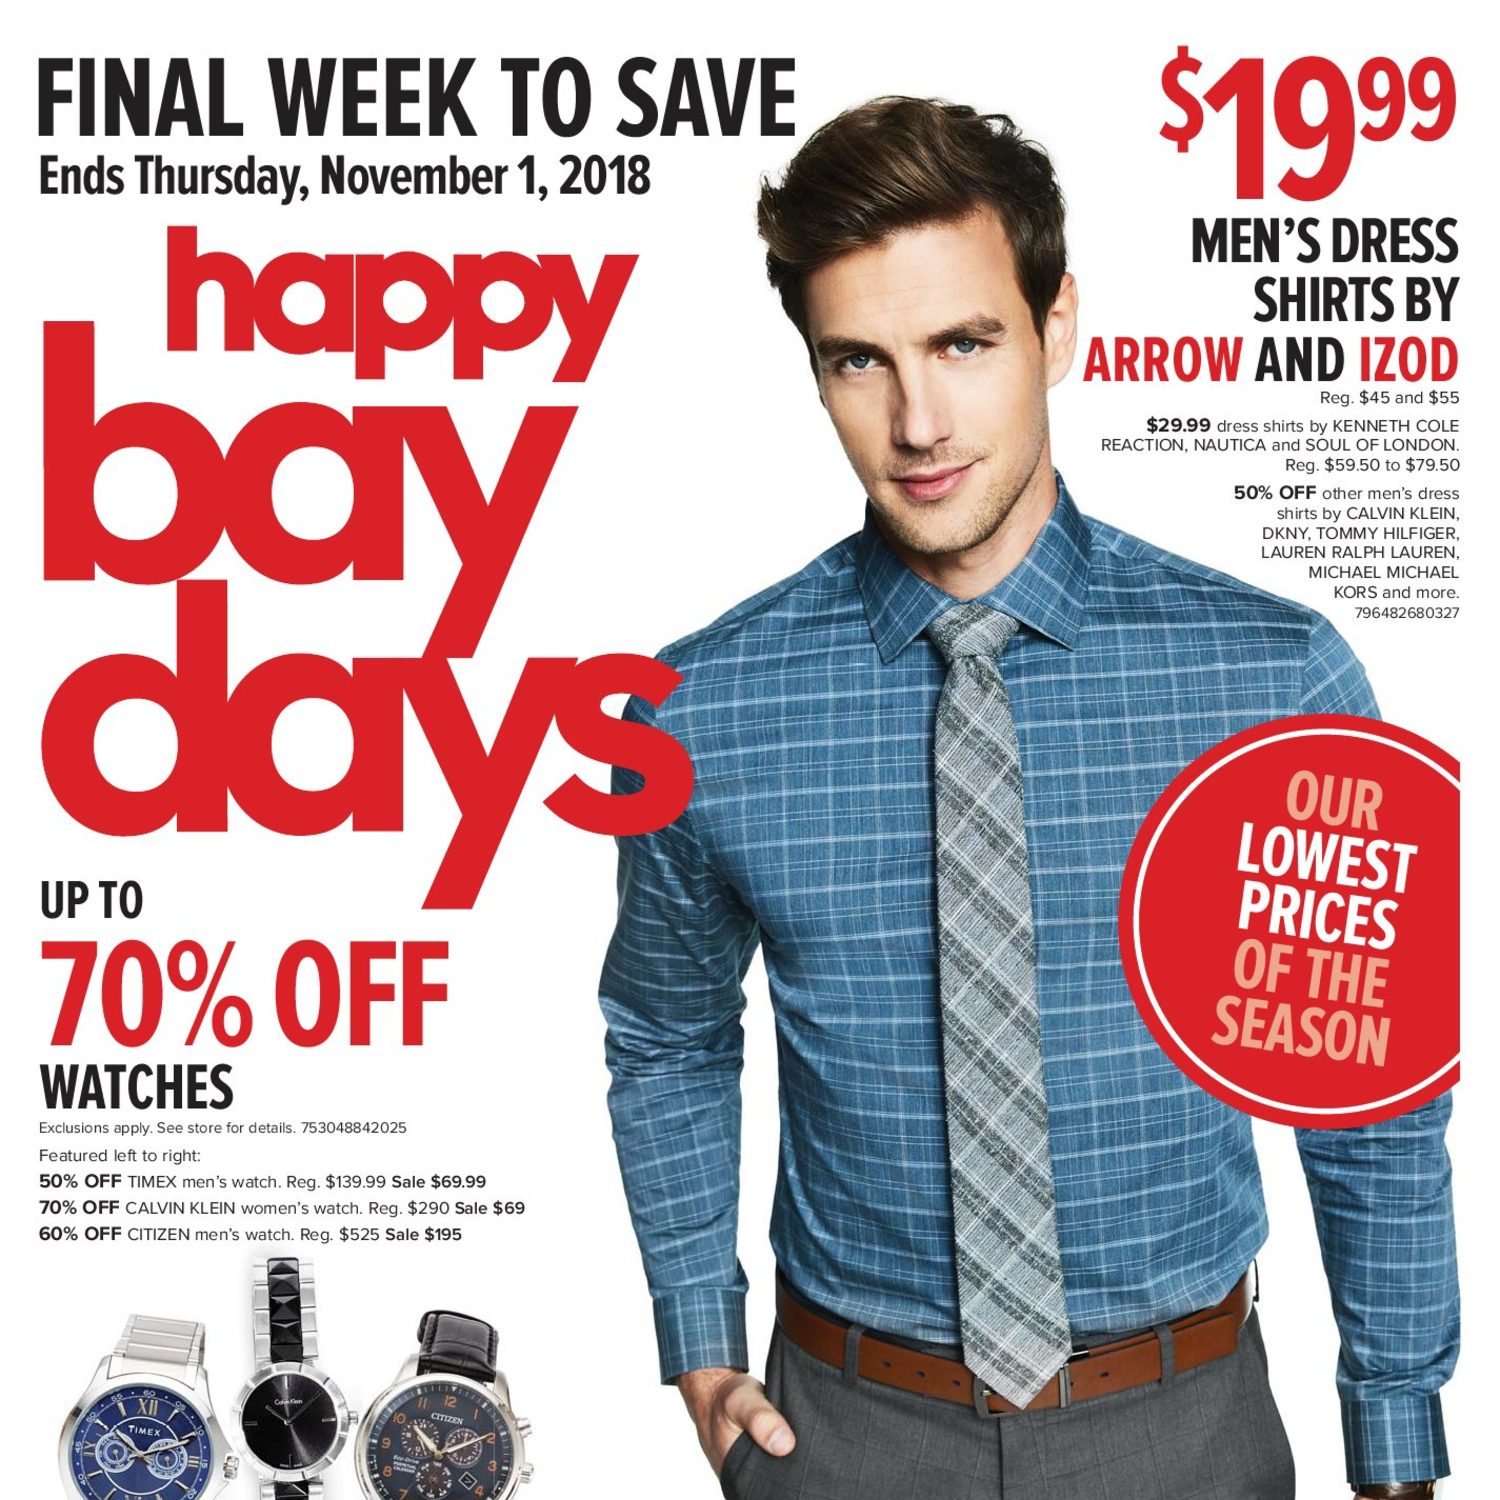 45838848 The Bay Weekly Flyer - Final Week To Save - Happy Bay Days - Oct 26 – Nov 1  - RedFlagDeals.com